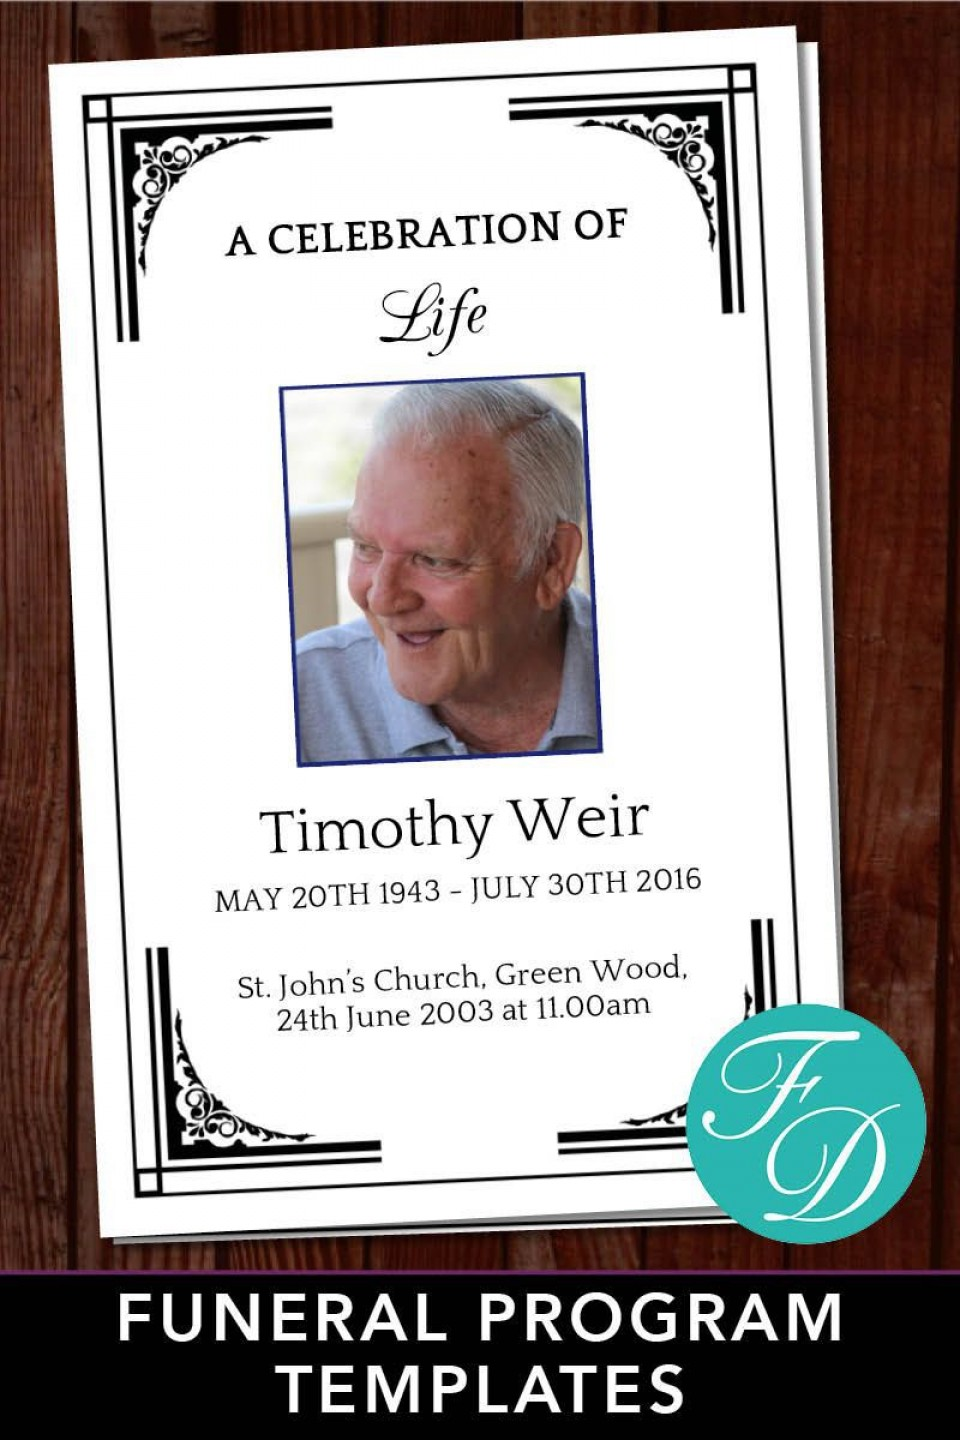 003 Astounding Free Celebration Of Life Program Template Download Concept 960